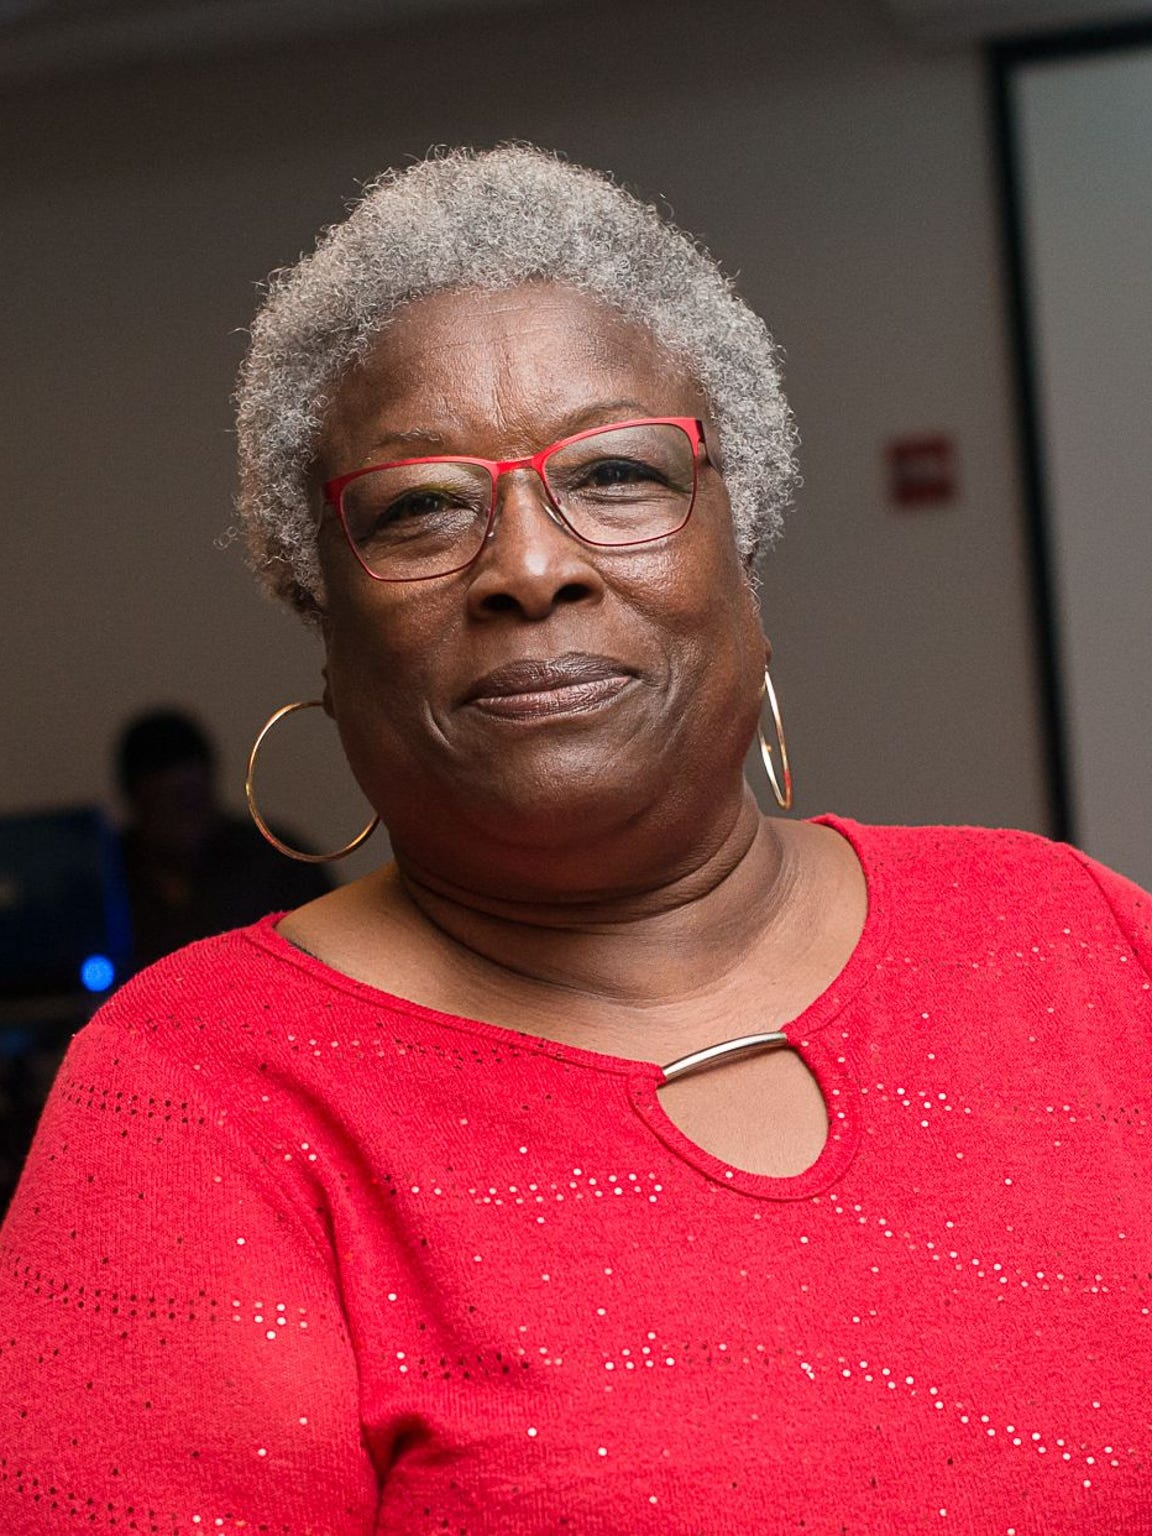 Alberta Wilson, the president and founding chair of the National Congress of Black Women in Brevard.